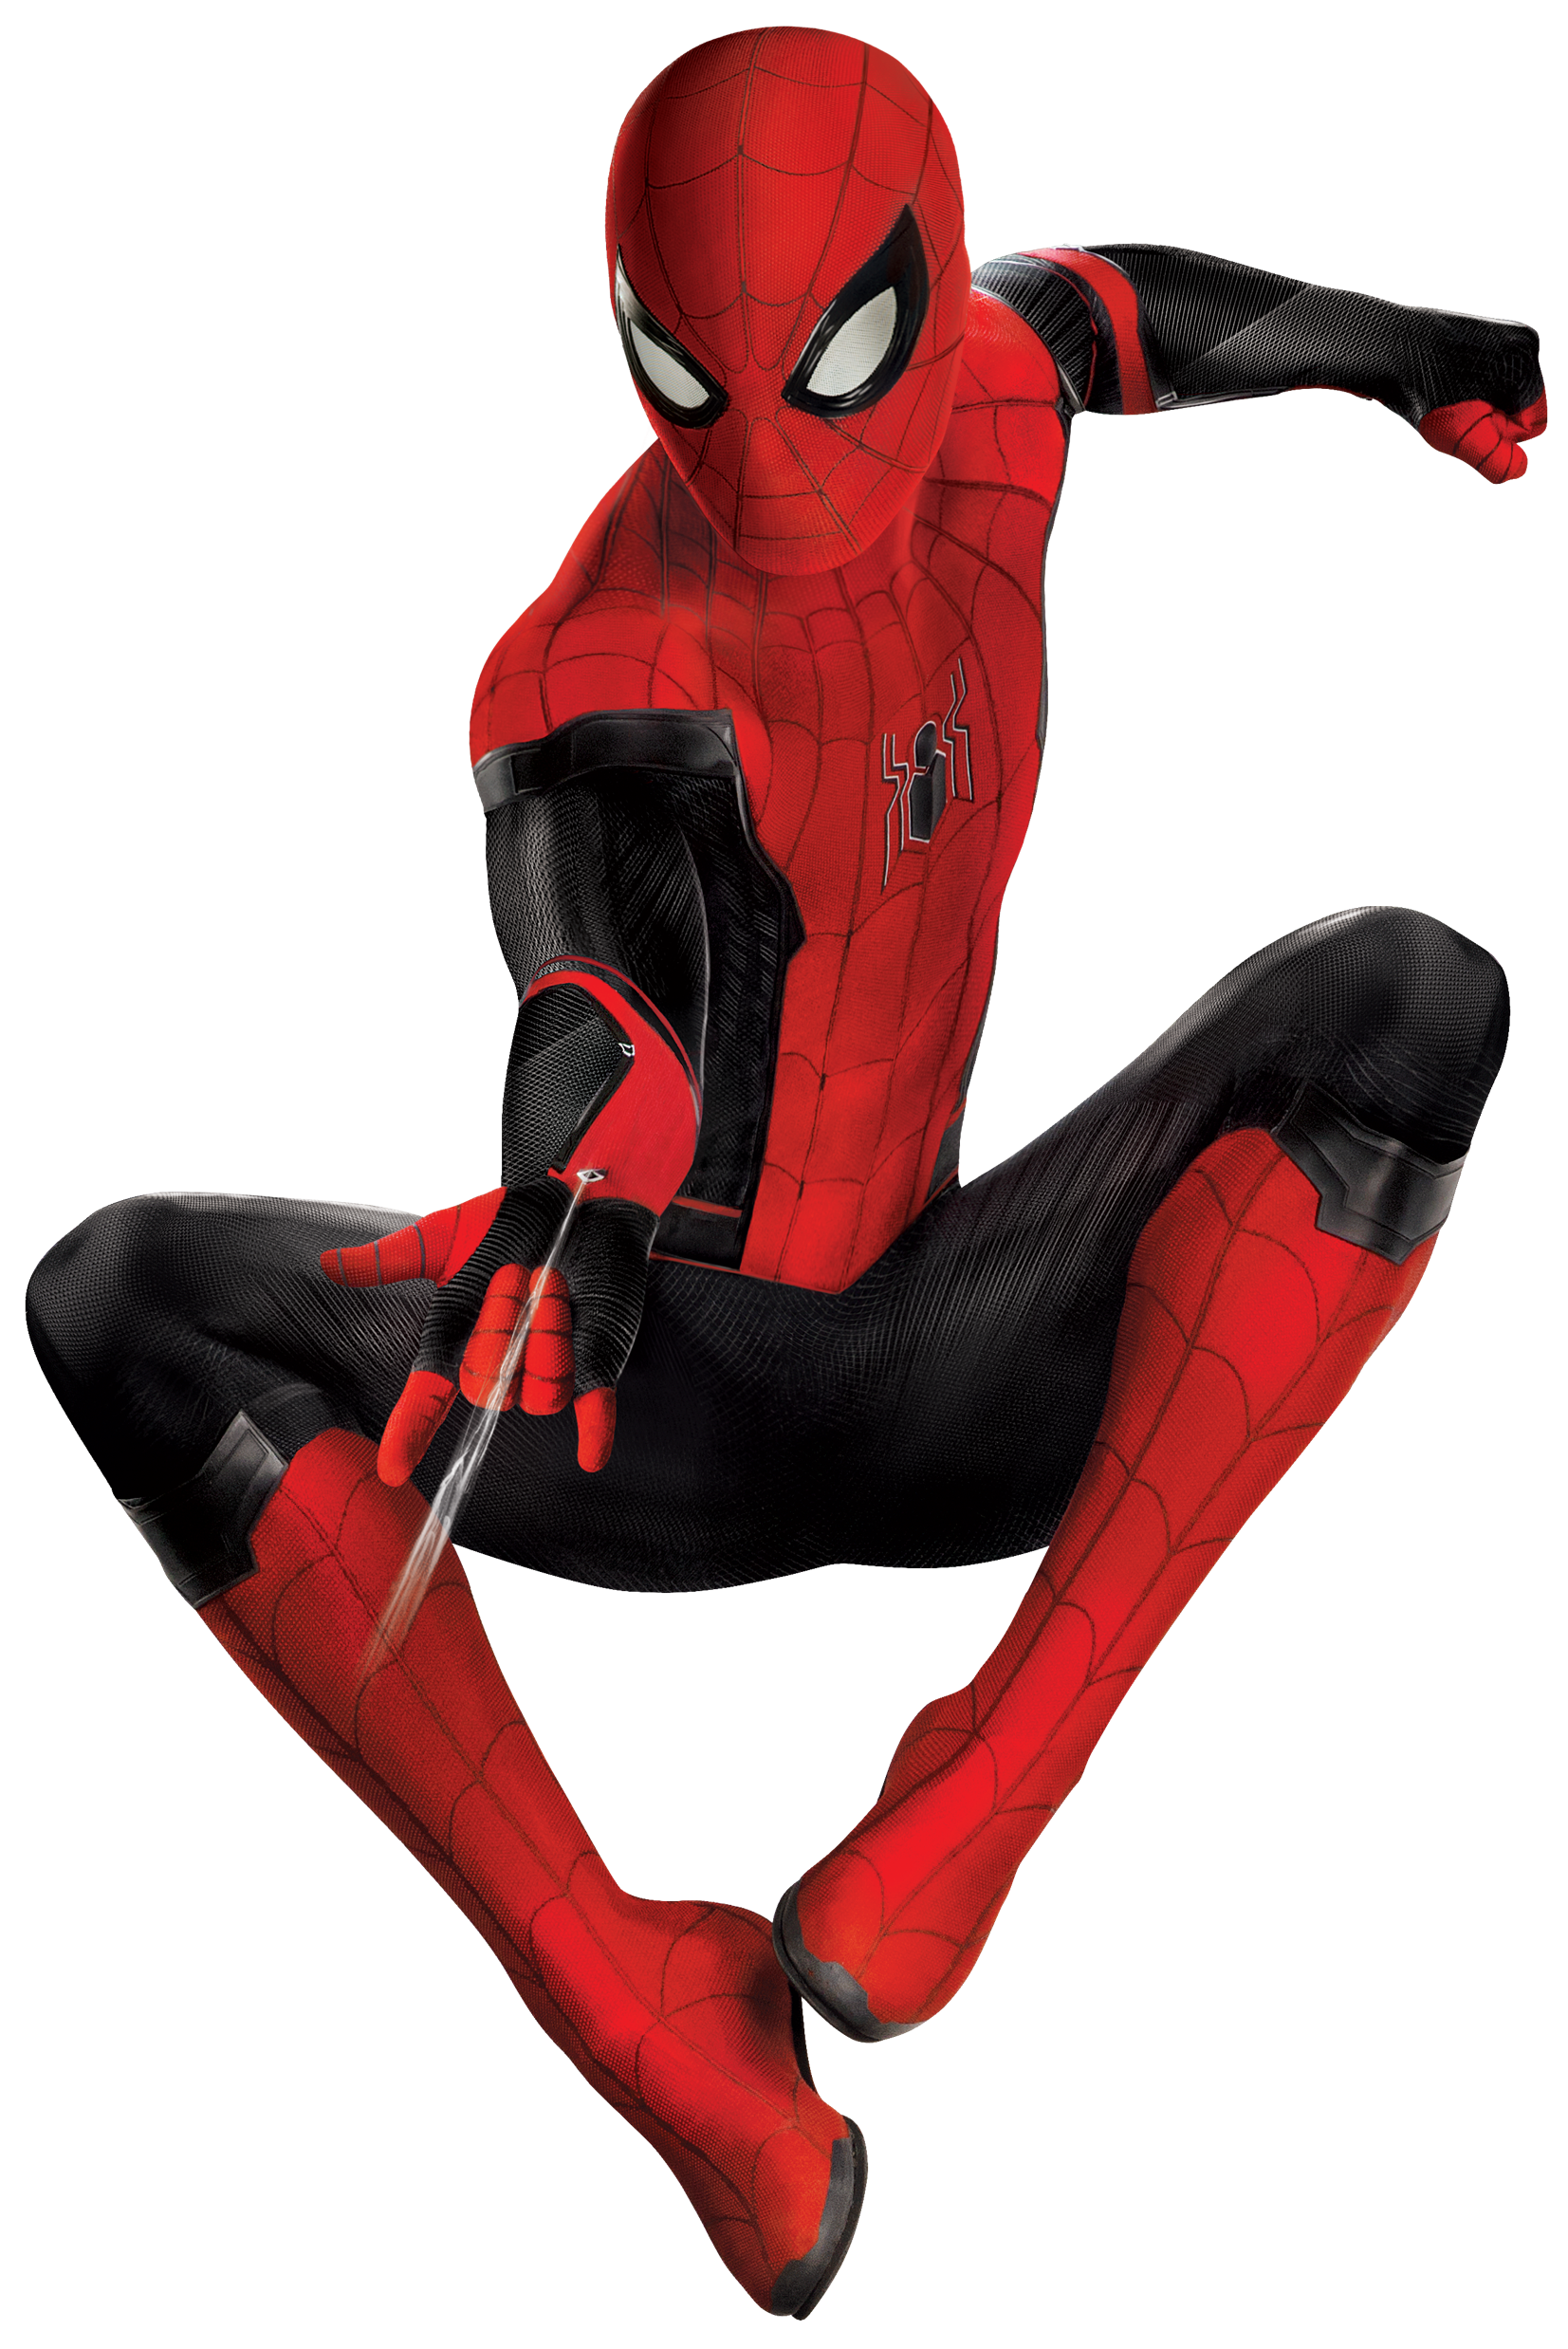 Spider-Man Suit | Marvel Cinematic Universe Wiki | FANDOM